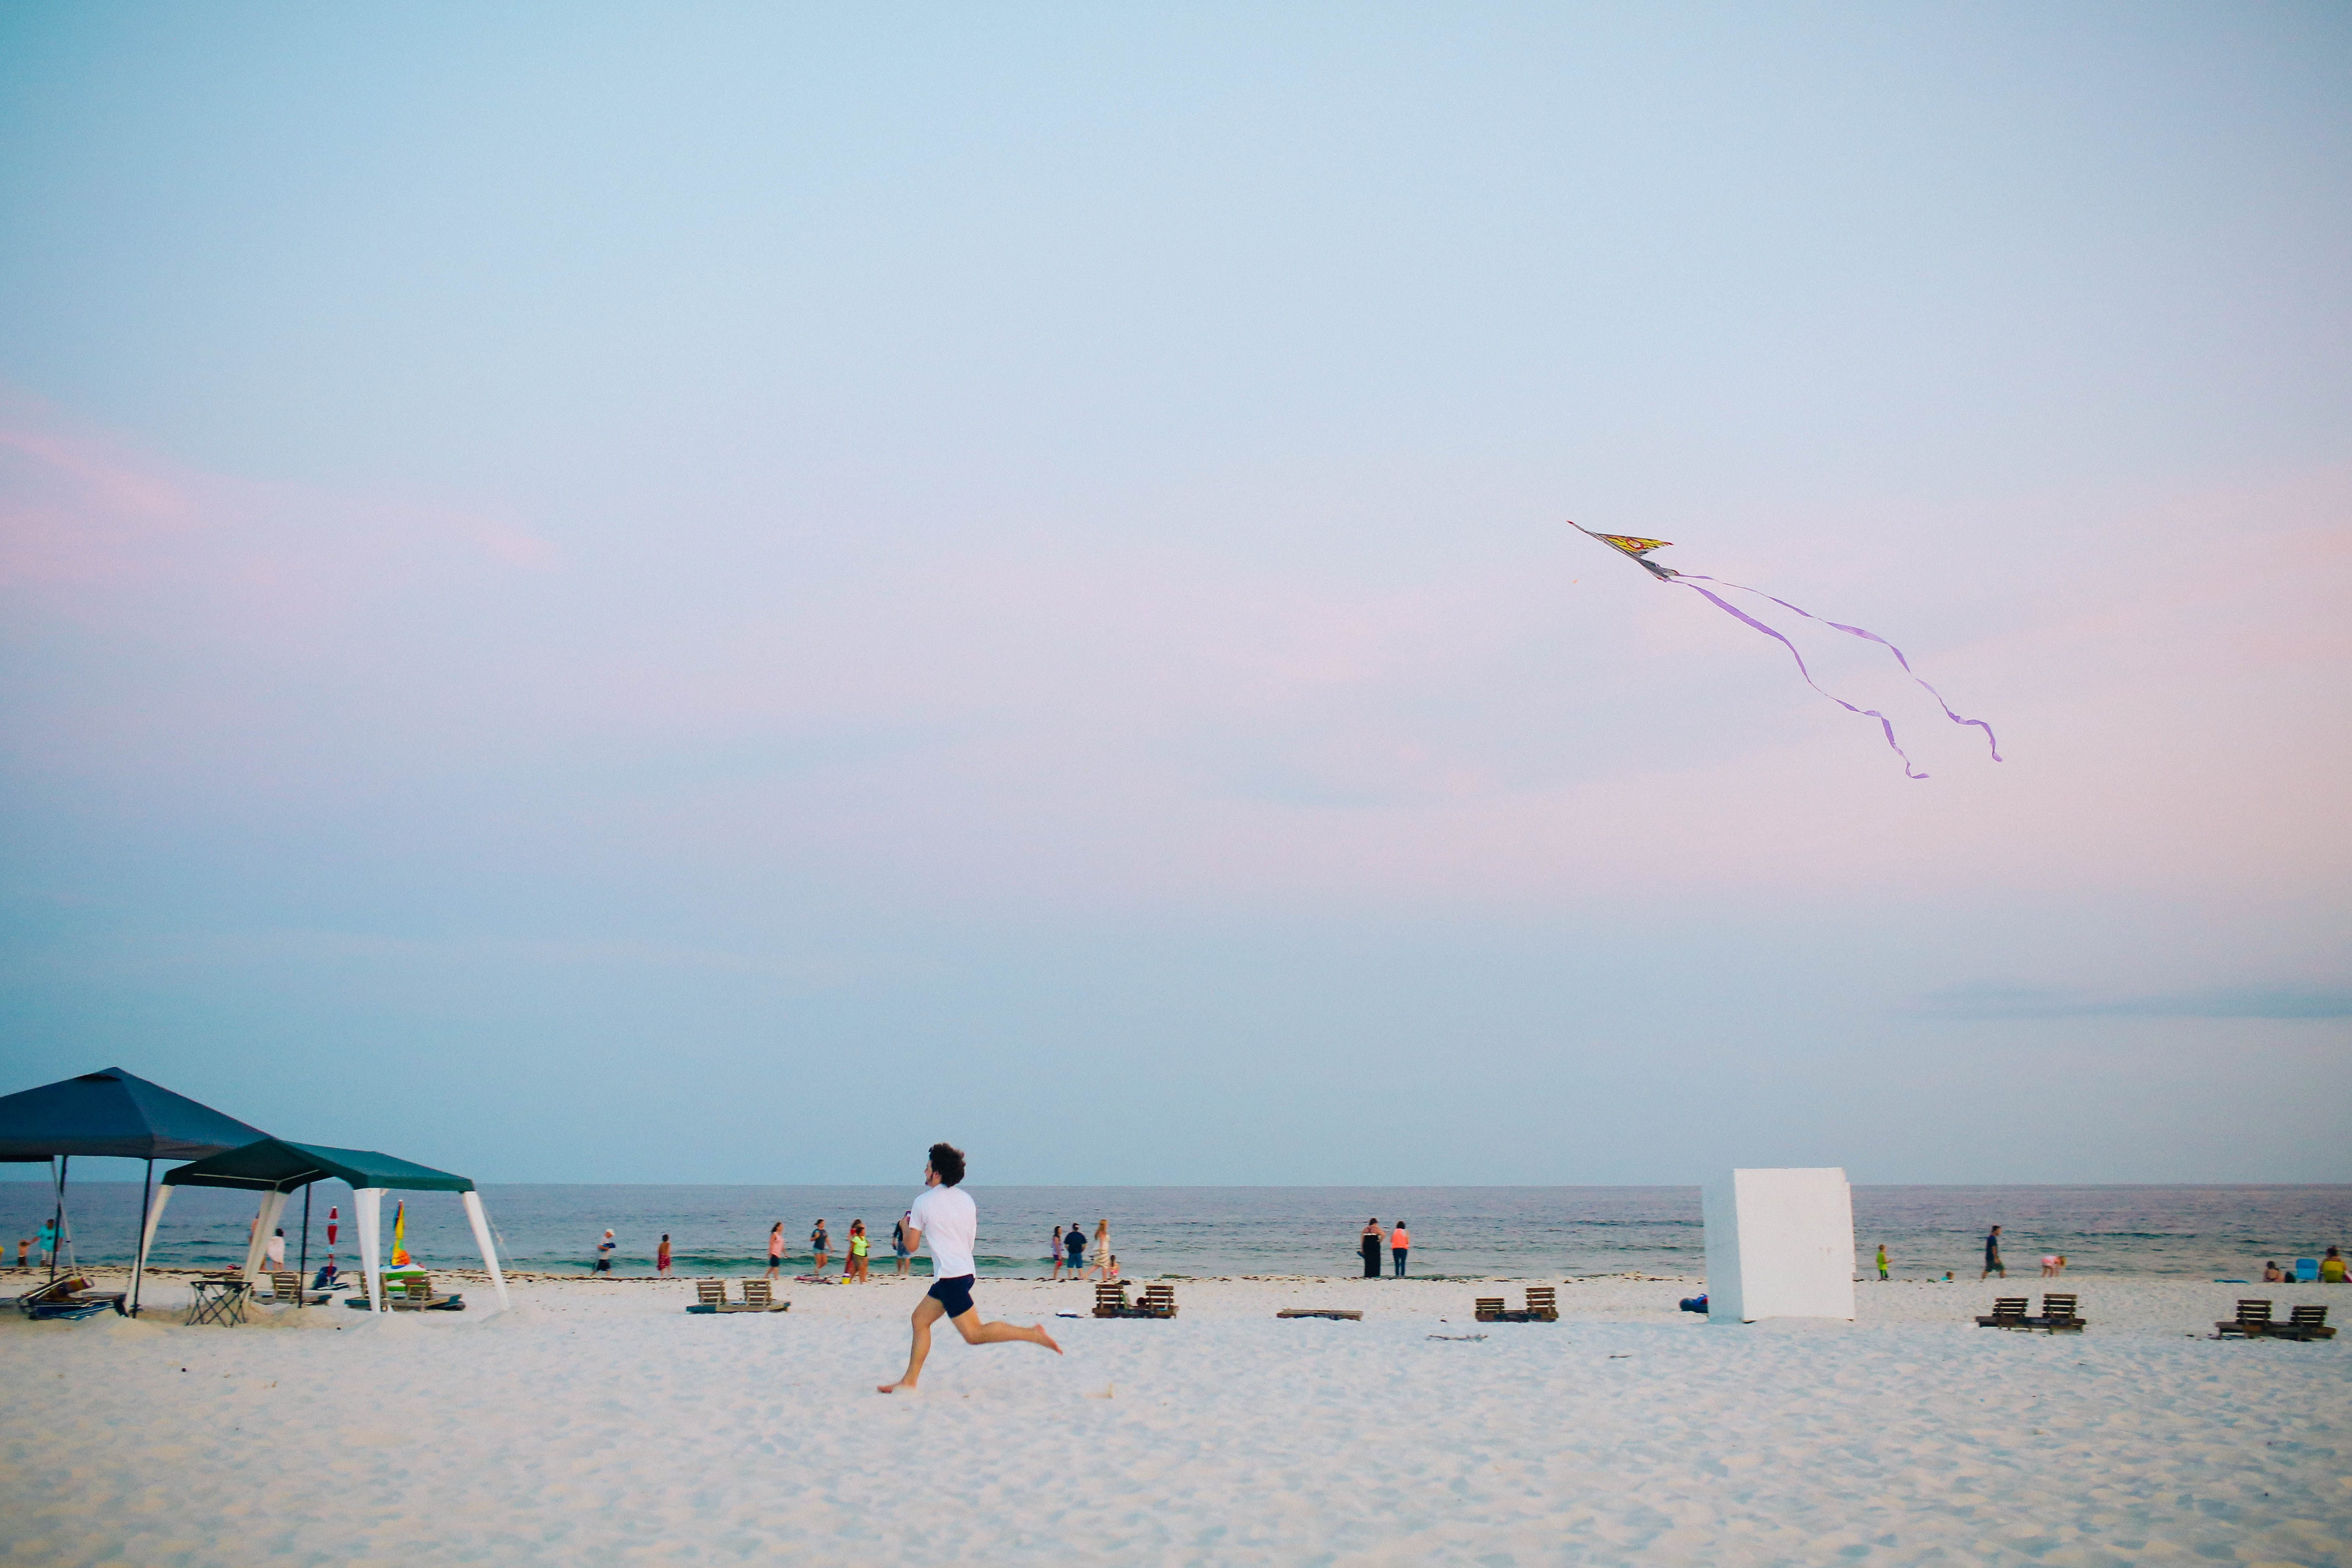 man running on white sand beach holding kite